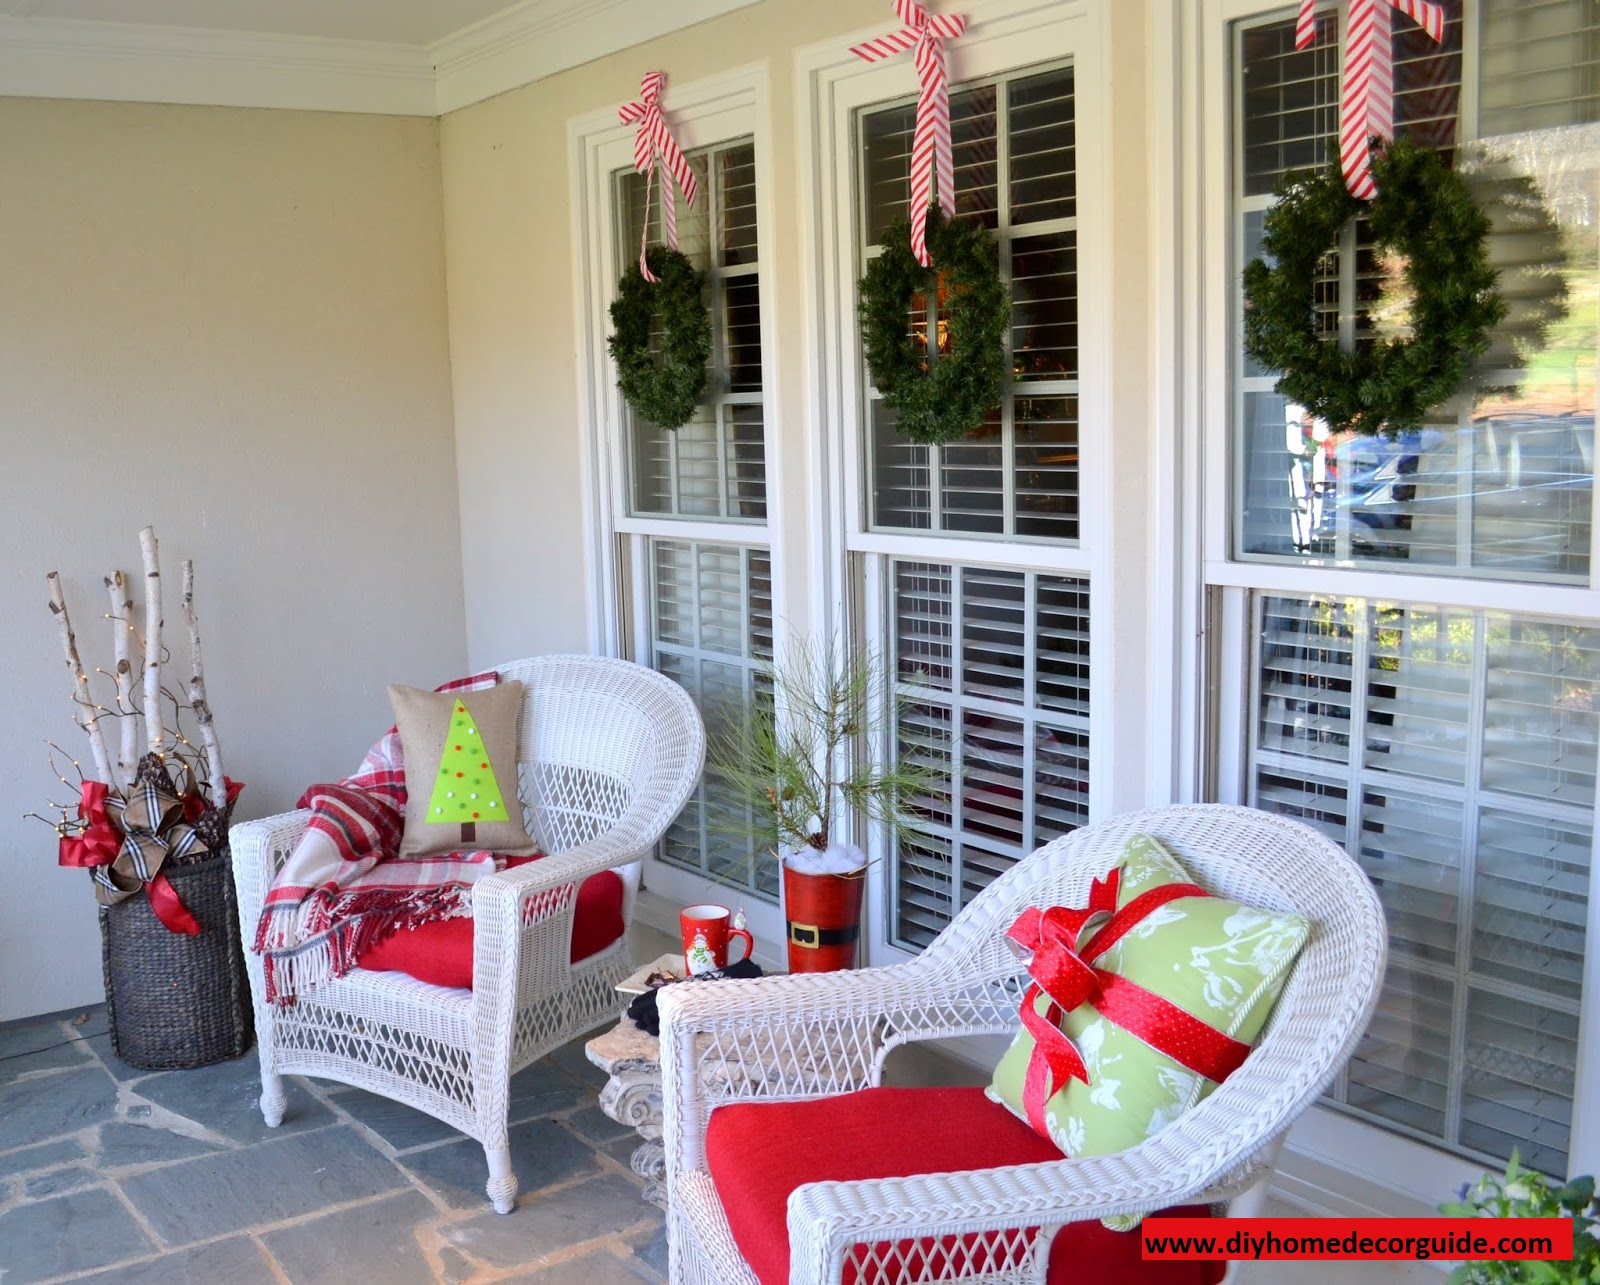 20 diy outdoor christmas decorations ideas 2014 - Christmas decorating exterior house ...